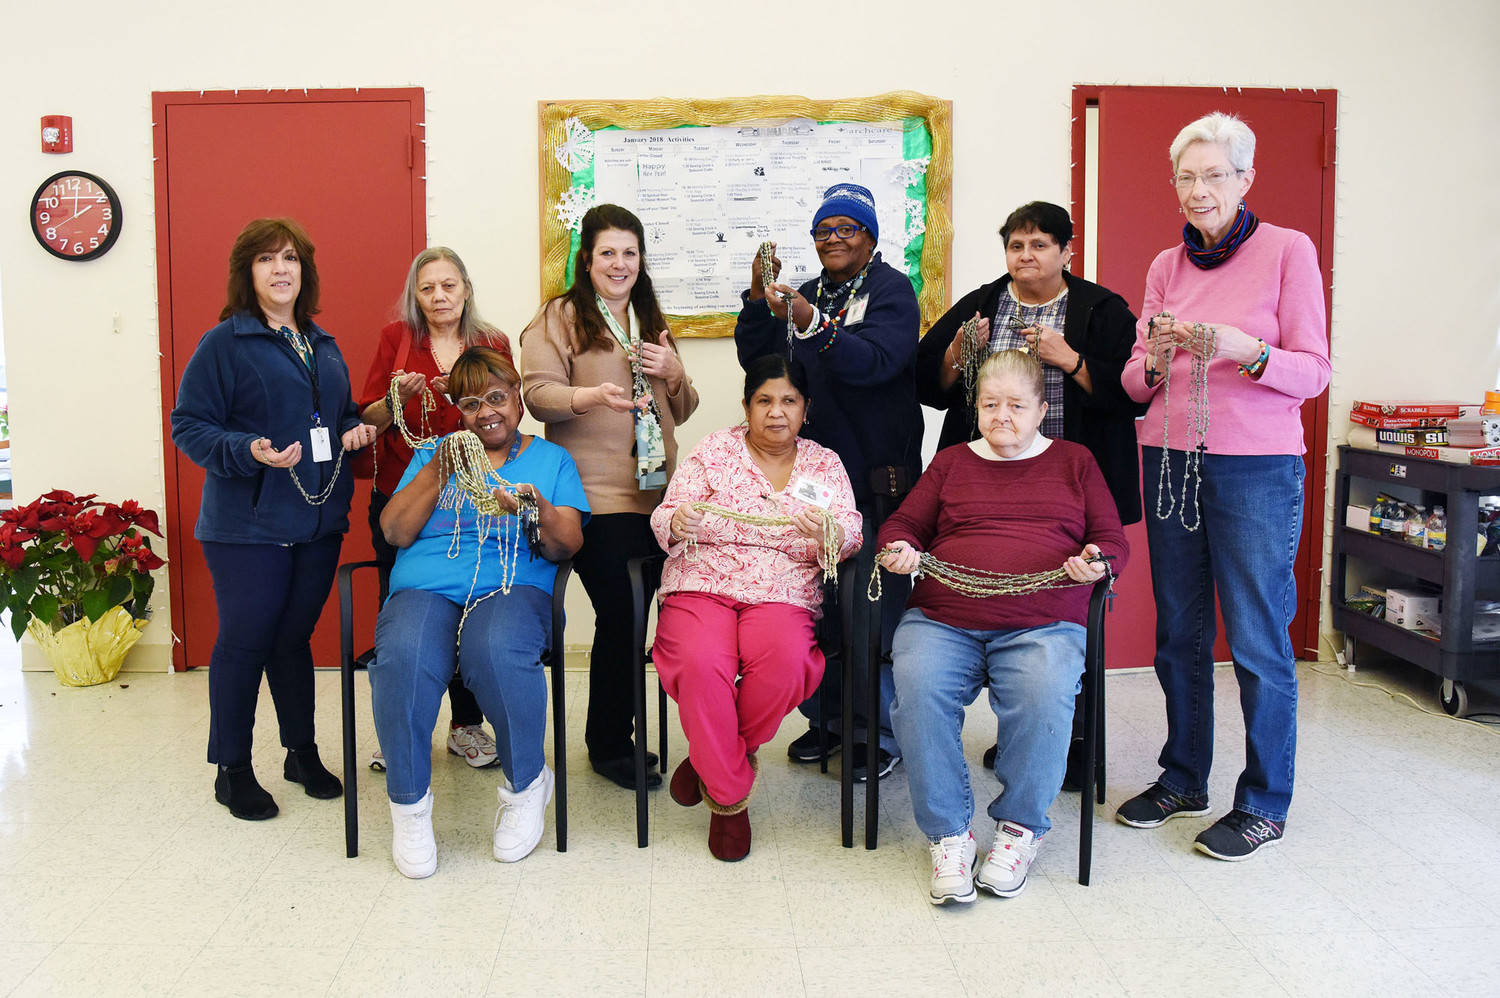 A group photo shows some of the participants in the rosary-making project. From left, seated, are Marcia Harris, Analisa Mascarinas and Mary Casey. Standing, from left: Cynthia Cobb, ArchCare transportation coordinator; Ana Blanco, Lauren Abate, ArchCare alternate care site coordinator; Denise Spencer, Mildred Lebron, and Neale Steiniger, 